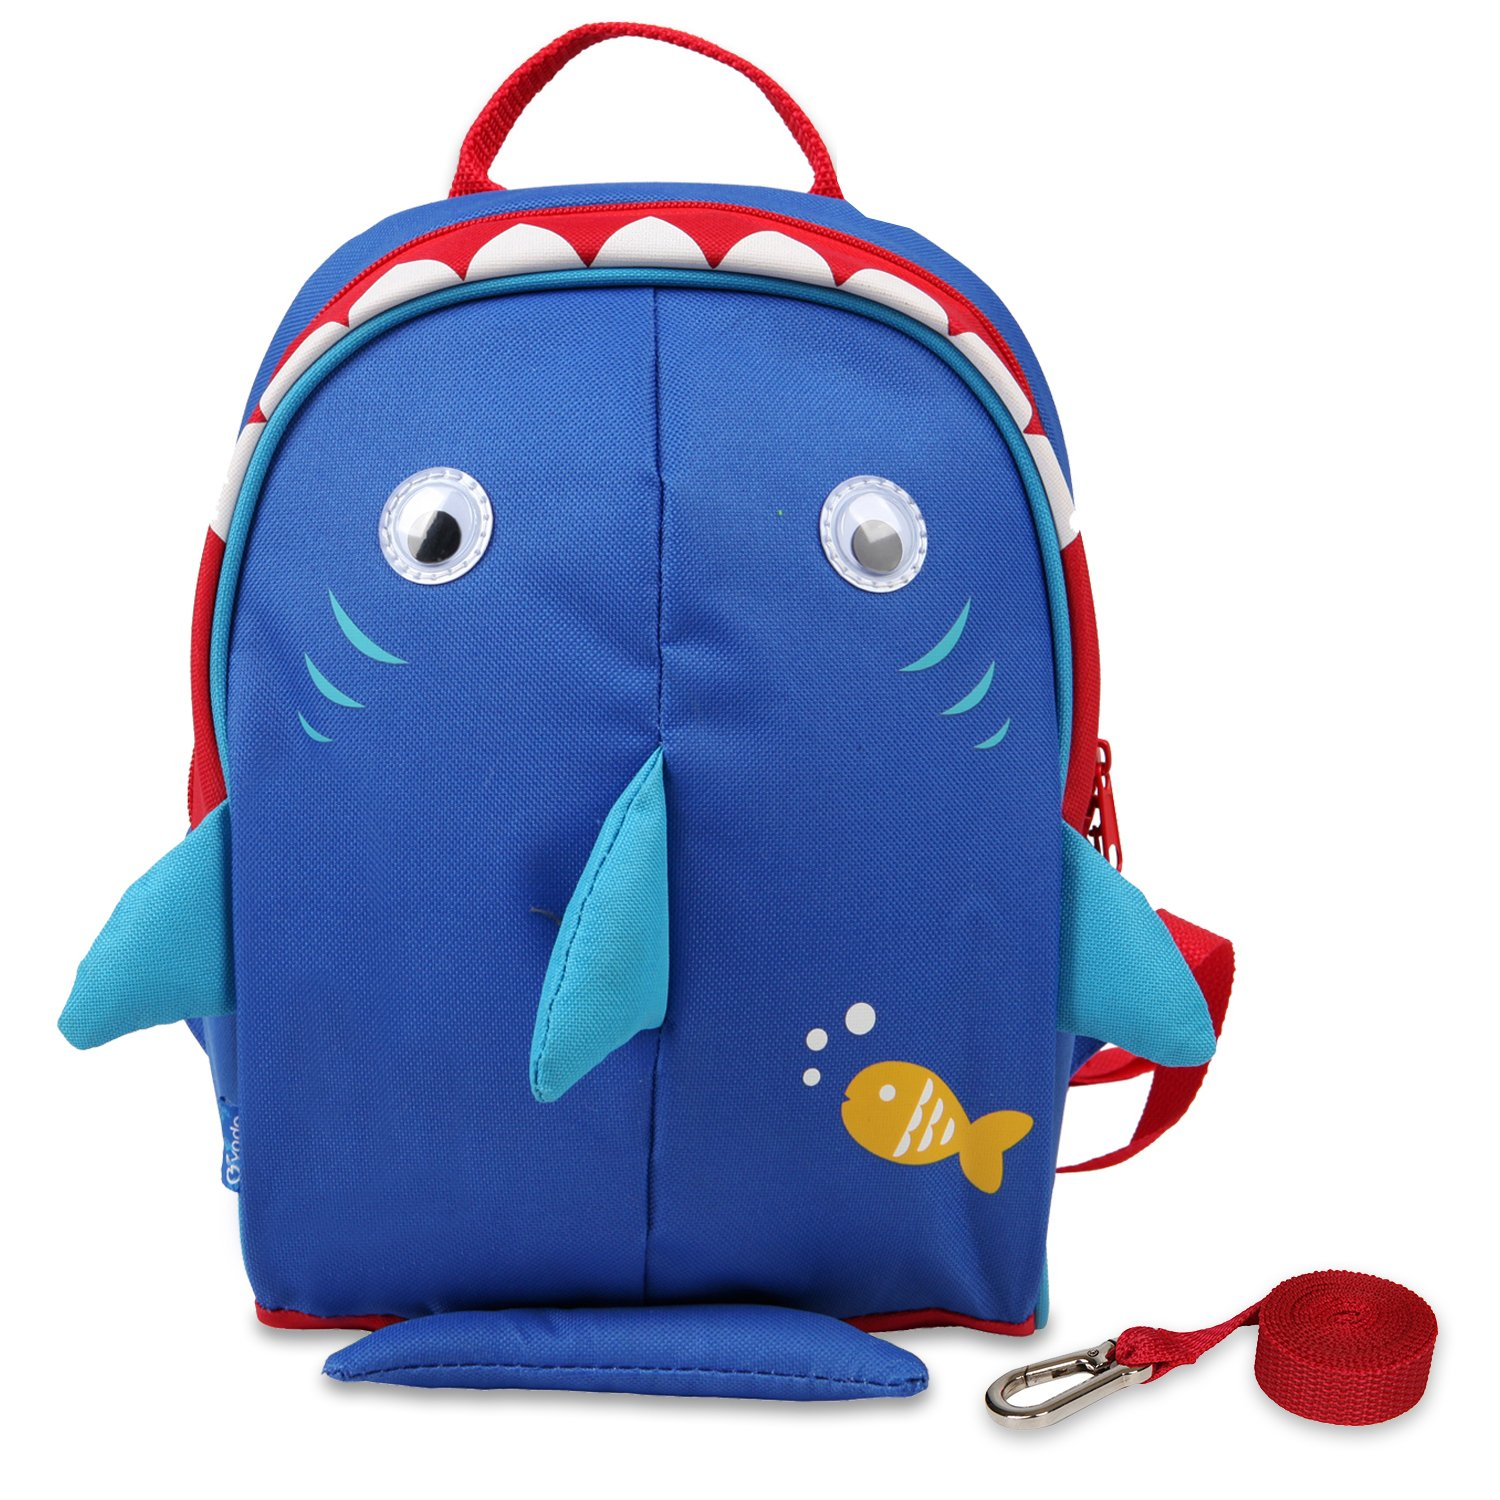 yodo Kids Insulated Toddler Backpack with Safety Harness Leash and Name Label - Playful Preschool Lunch Boxes Carry Bag, Navy Shark by yodo